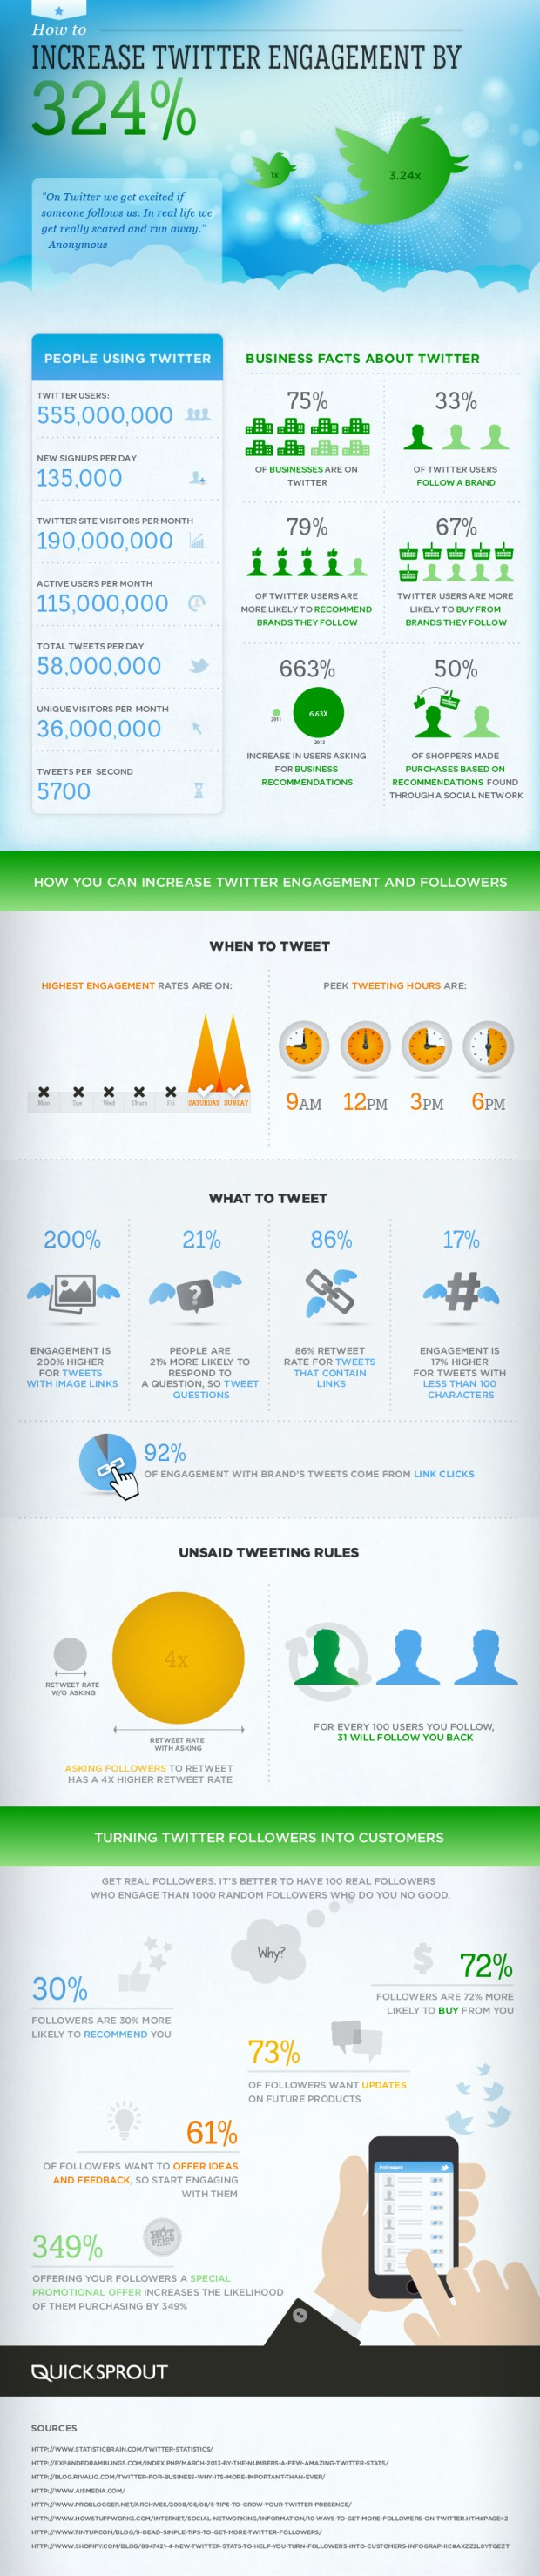 how-to-increase-your-twitter-engagement